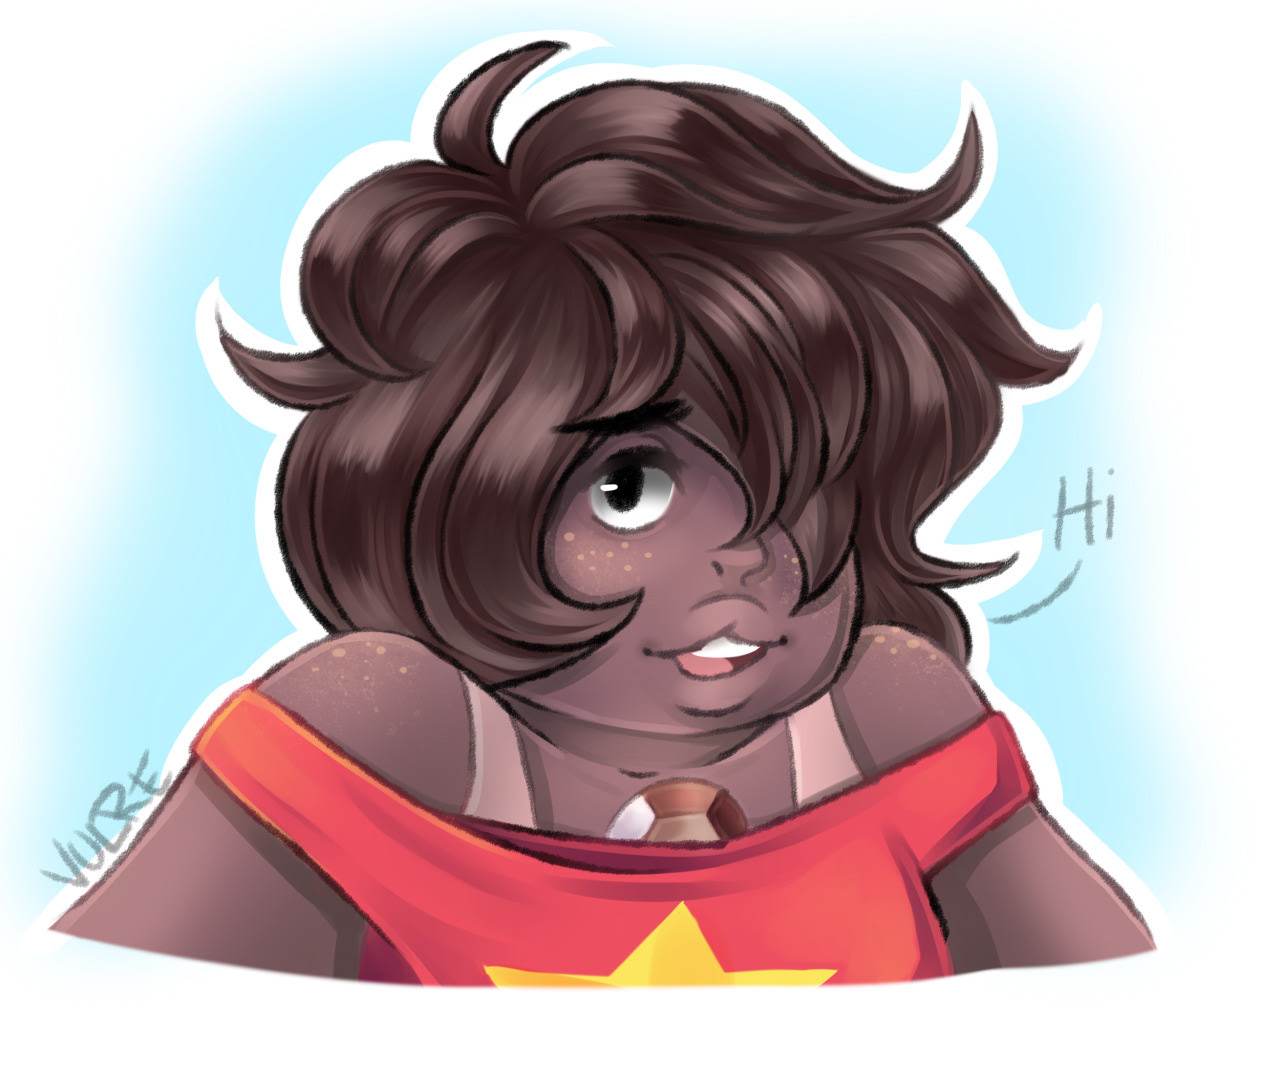 I had to draw Smoky Quartz, couldn't resist!